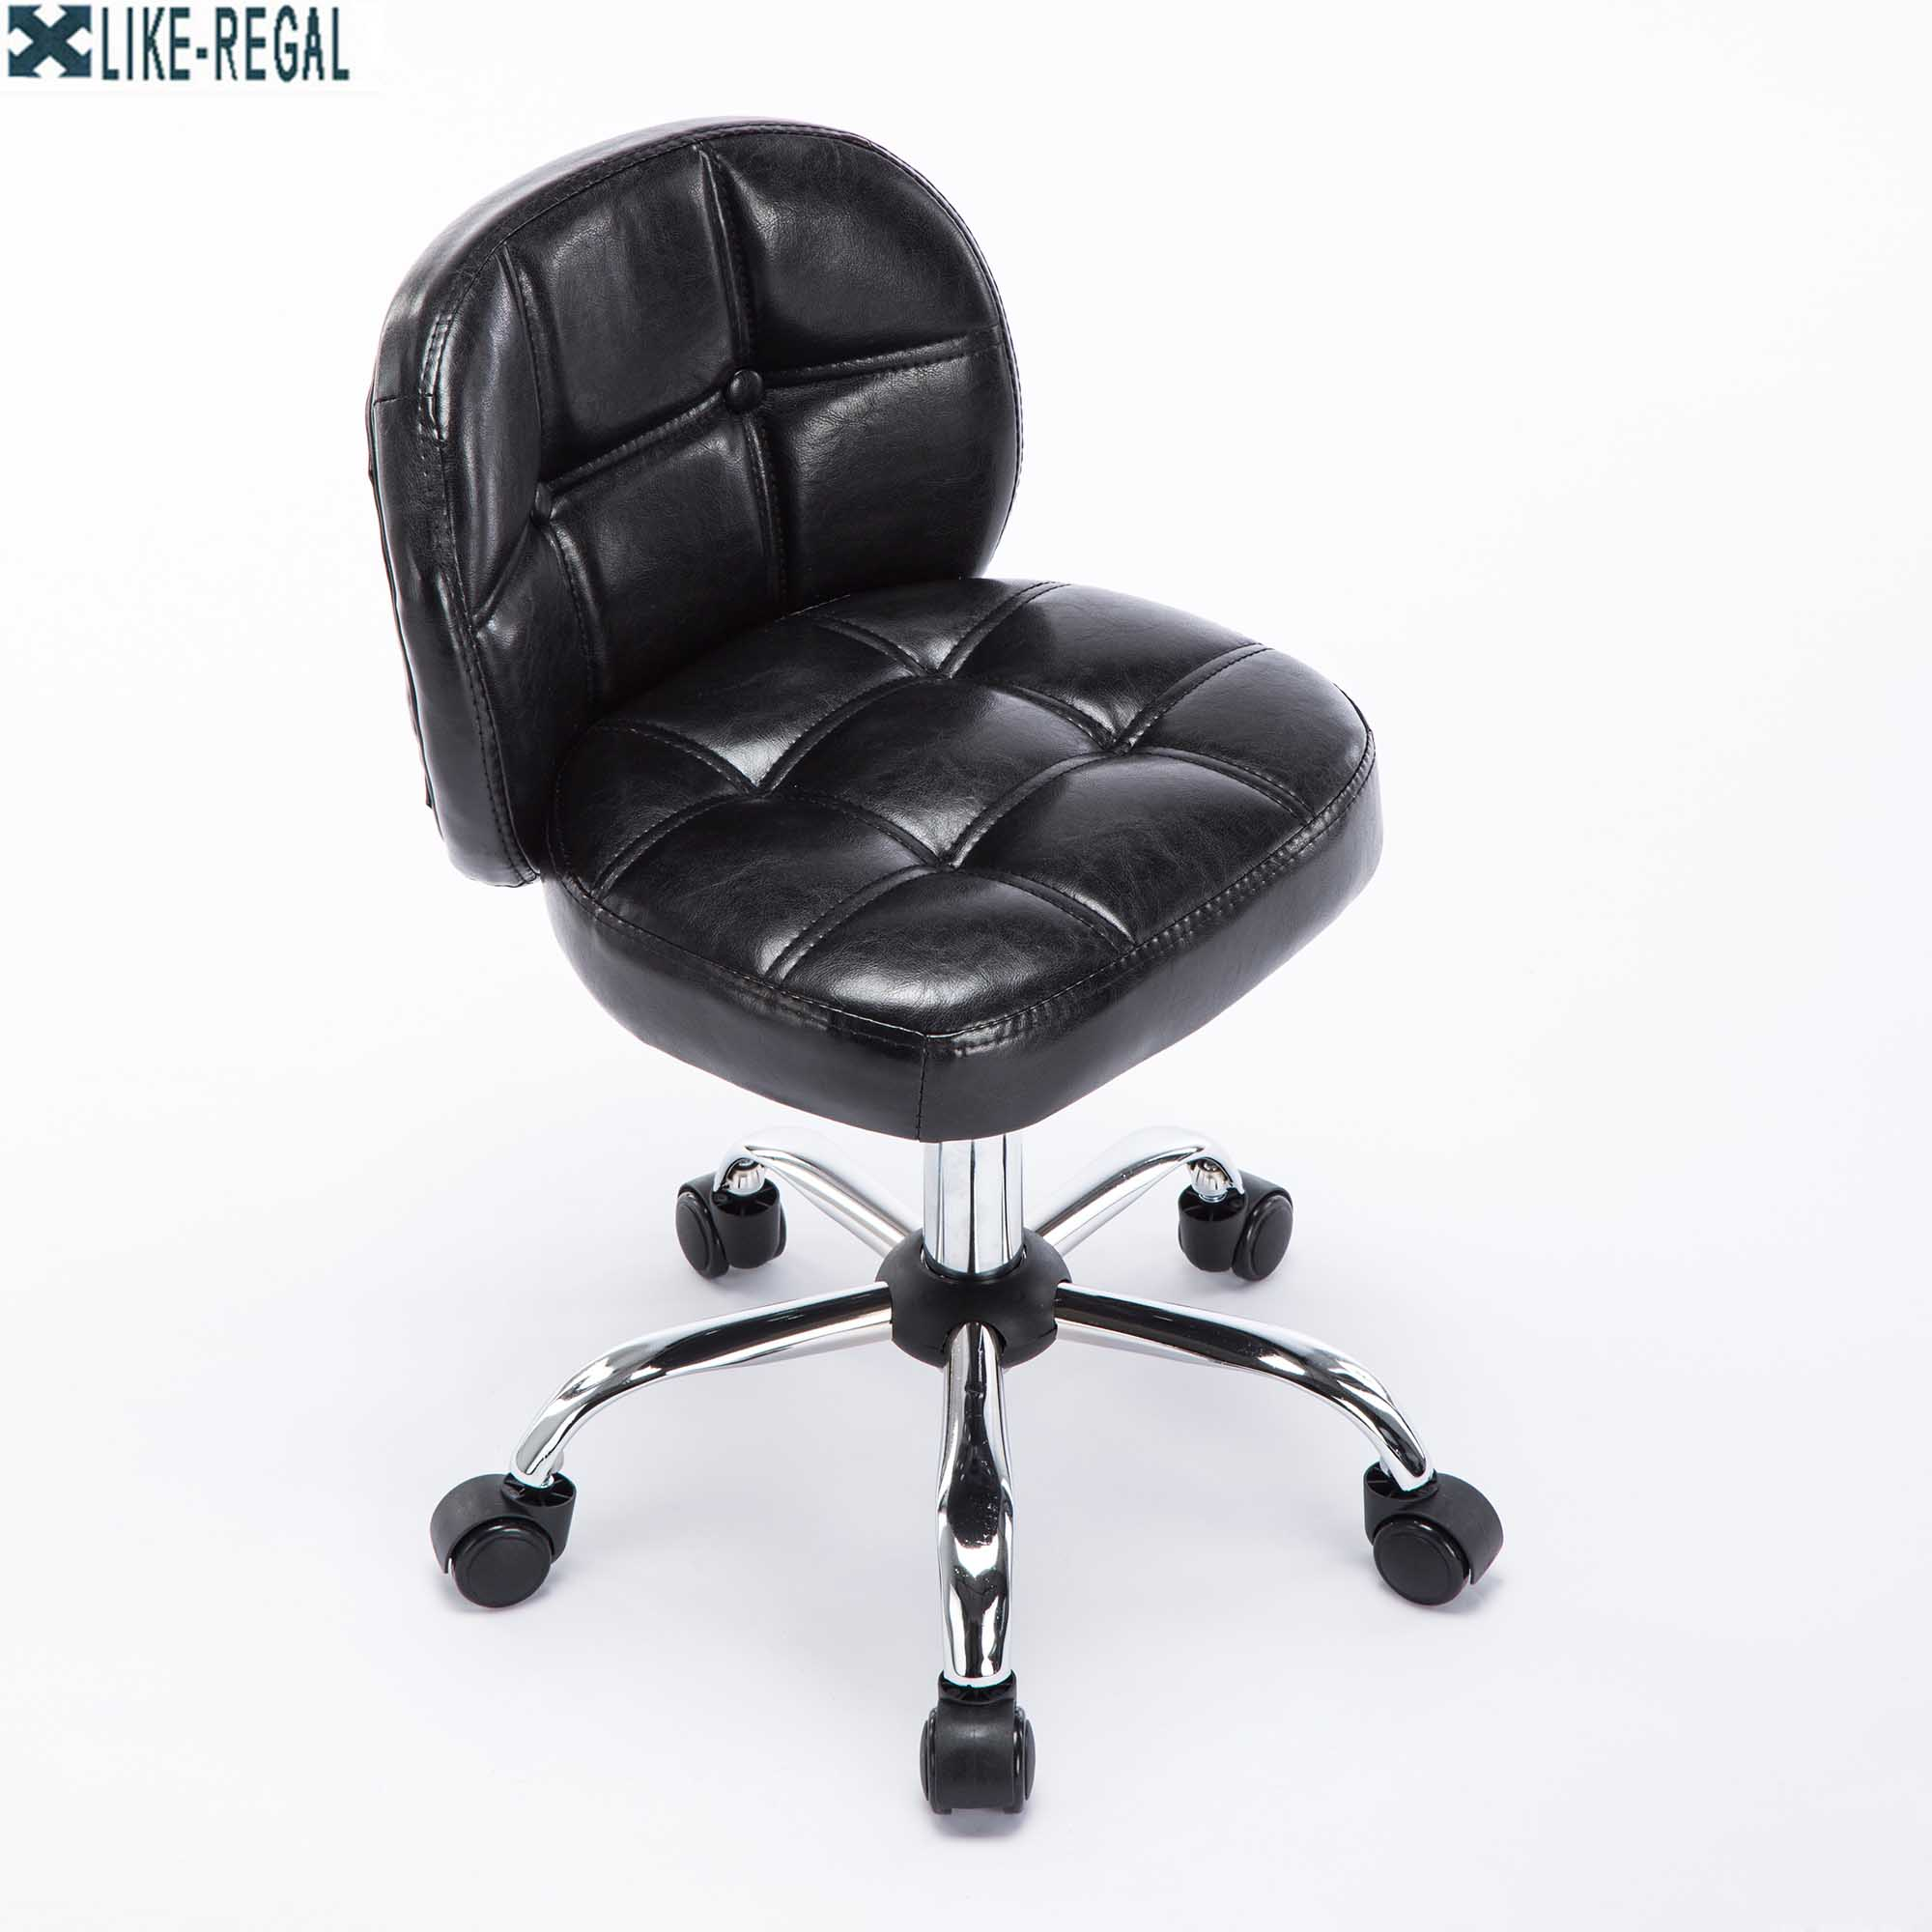 Computer Stool Home Small With Backrest Swivel Chair Bar Chair Stool For Coffee Shop